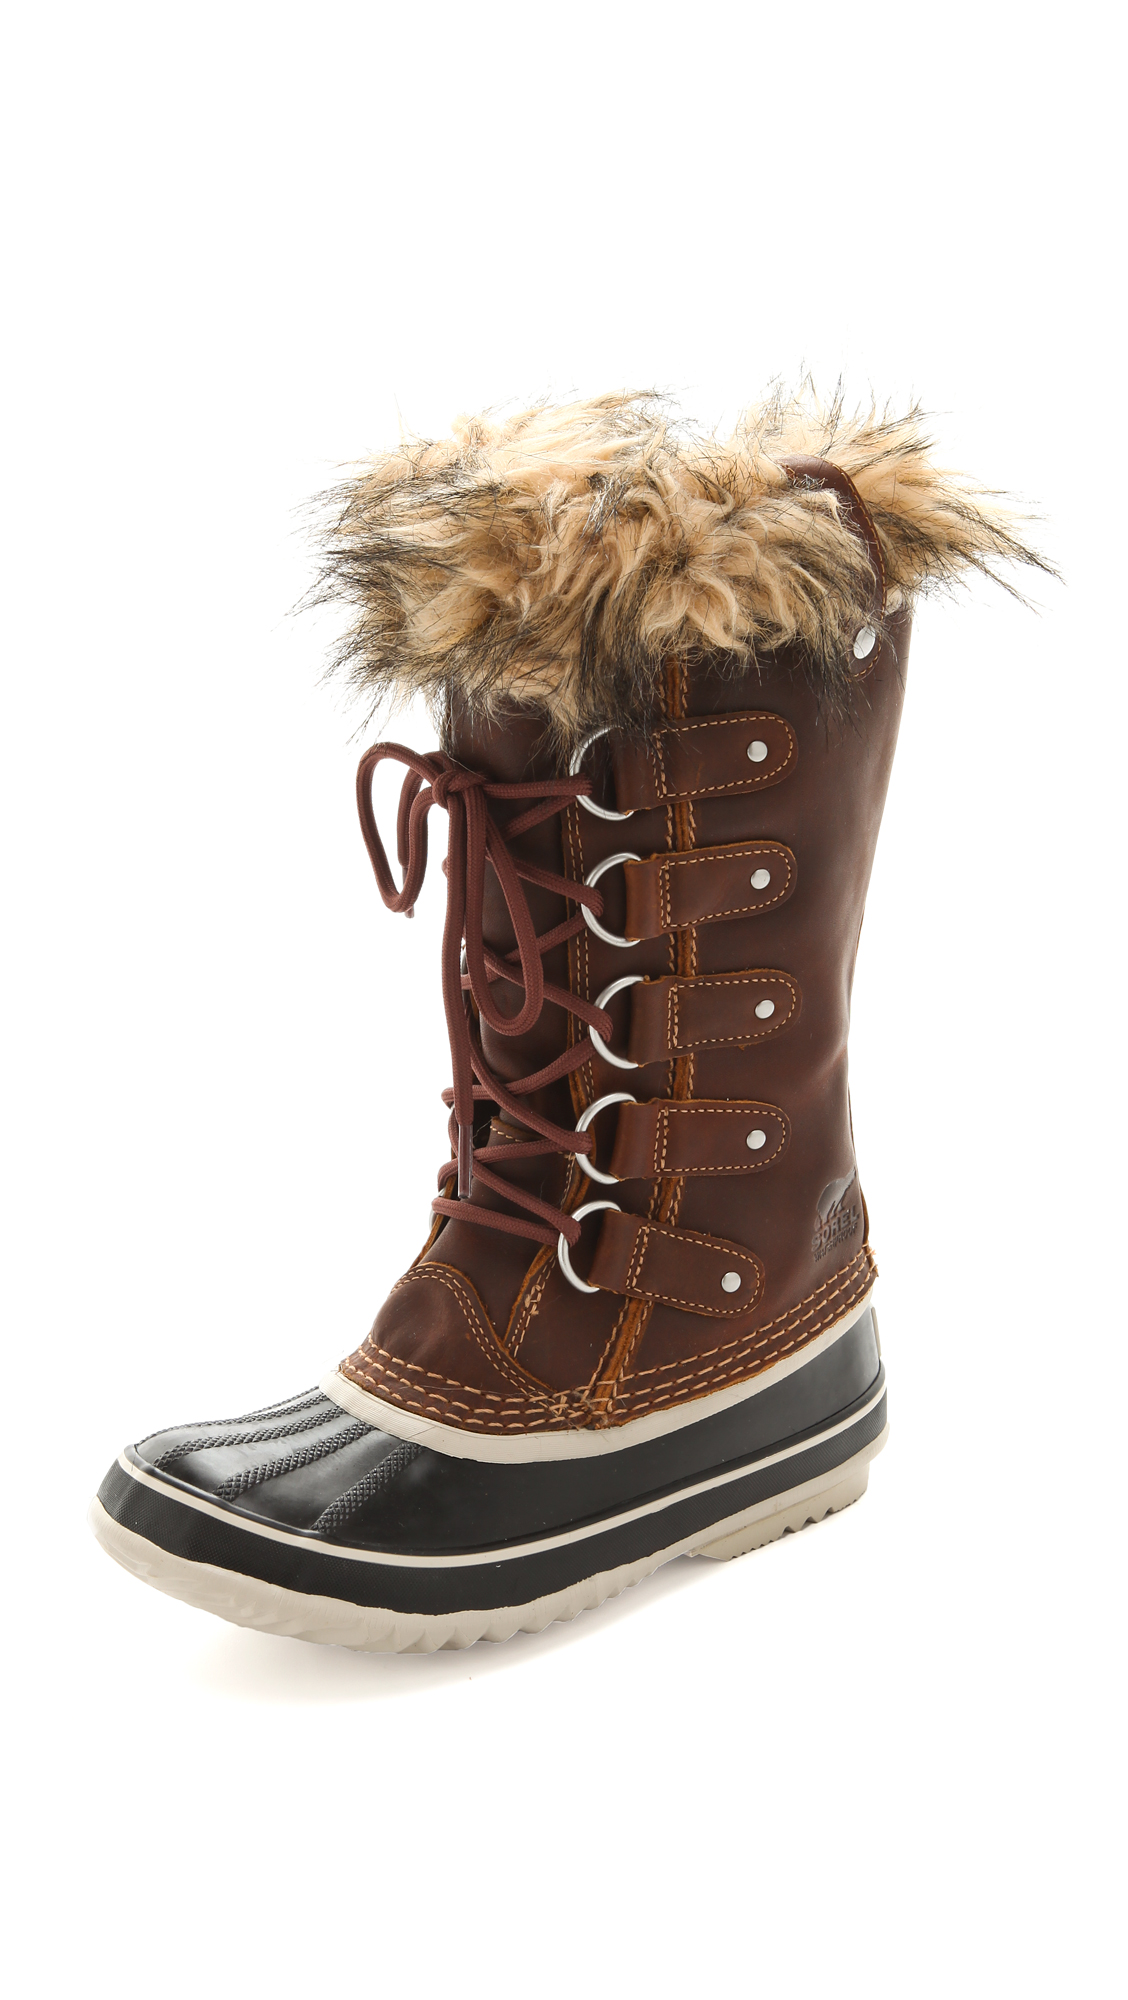 cheaper competitive price aliexpress Sorel Joan of Arctic Premium Boots with Removable Lining ...